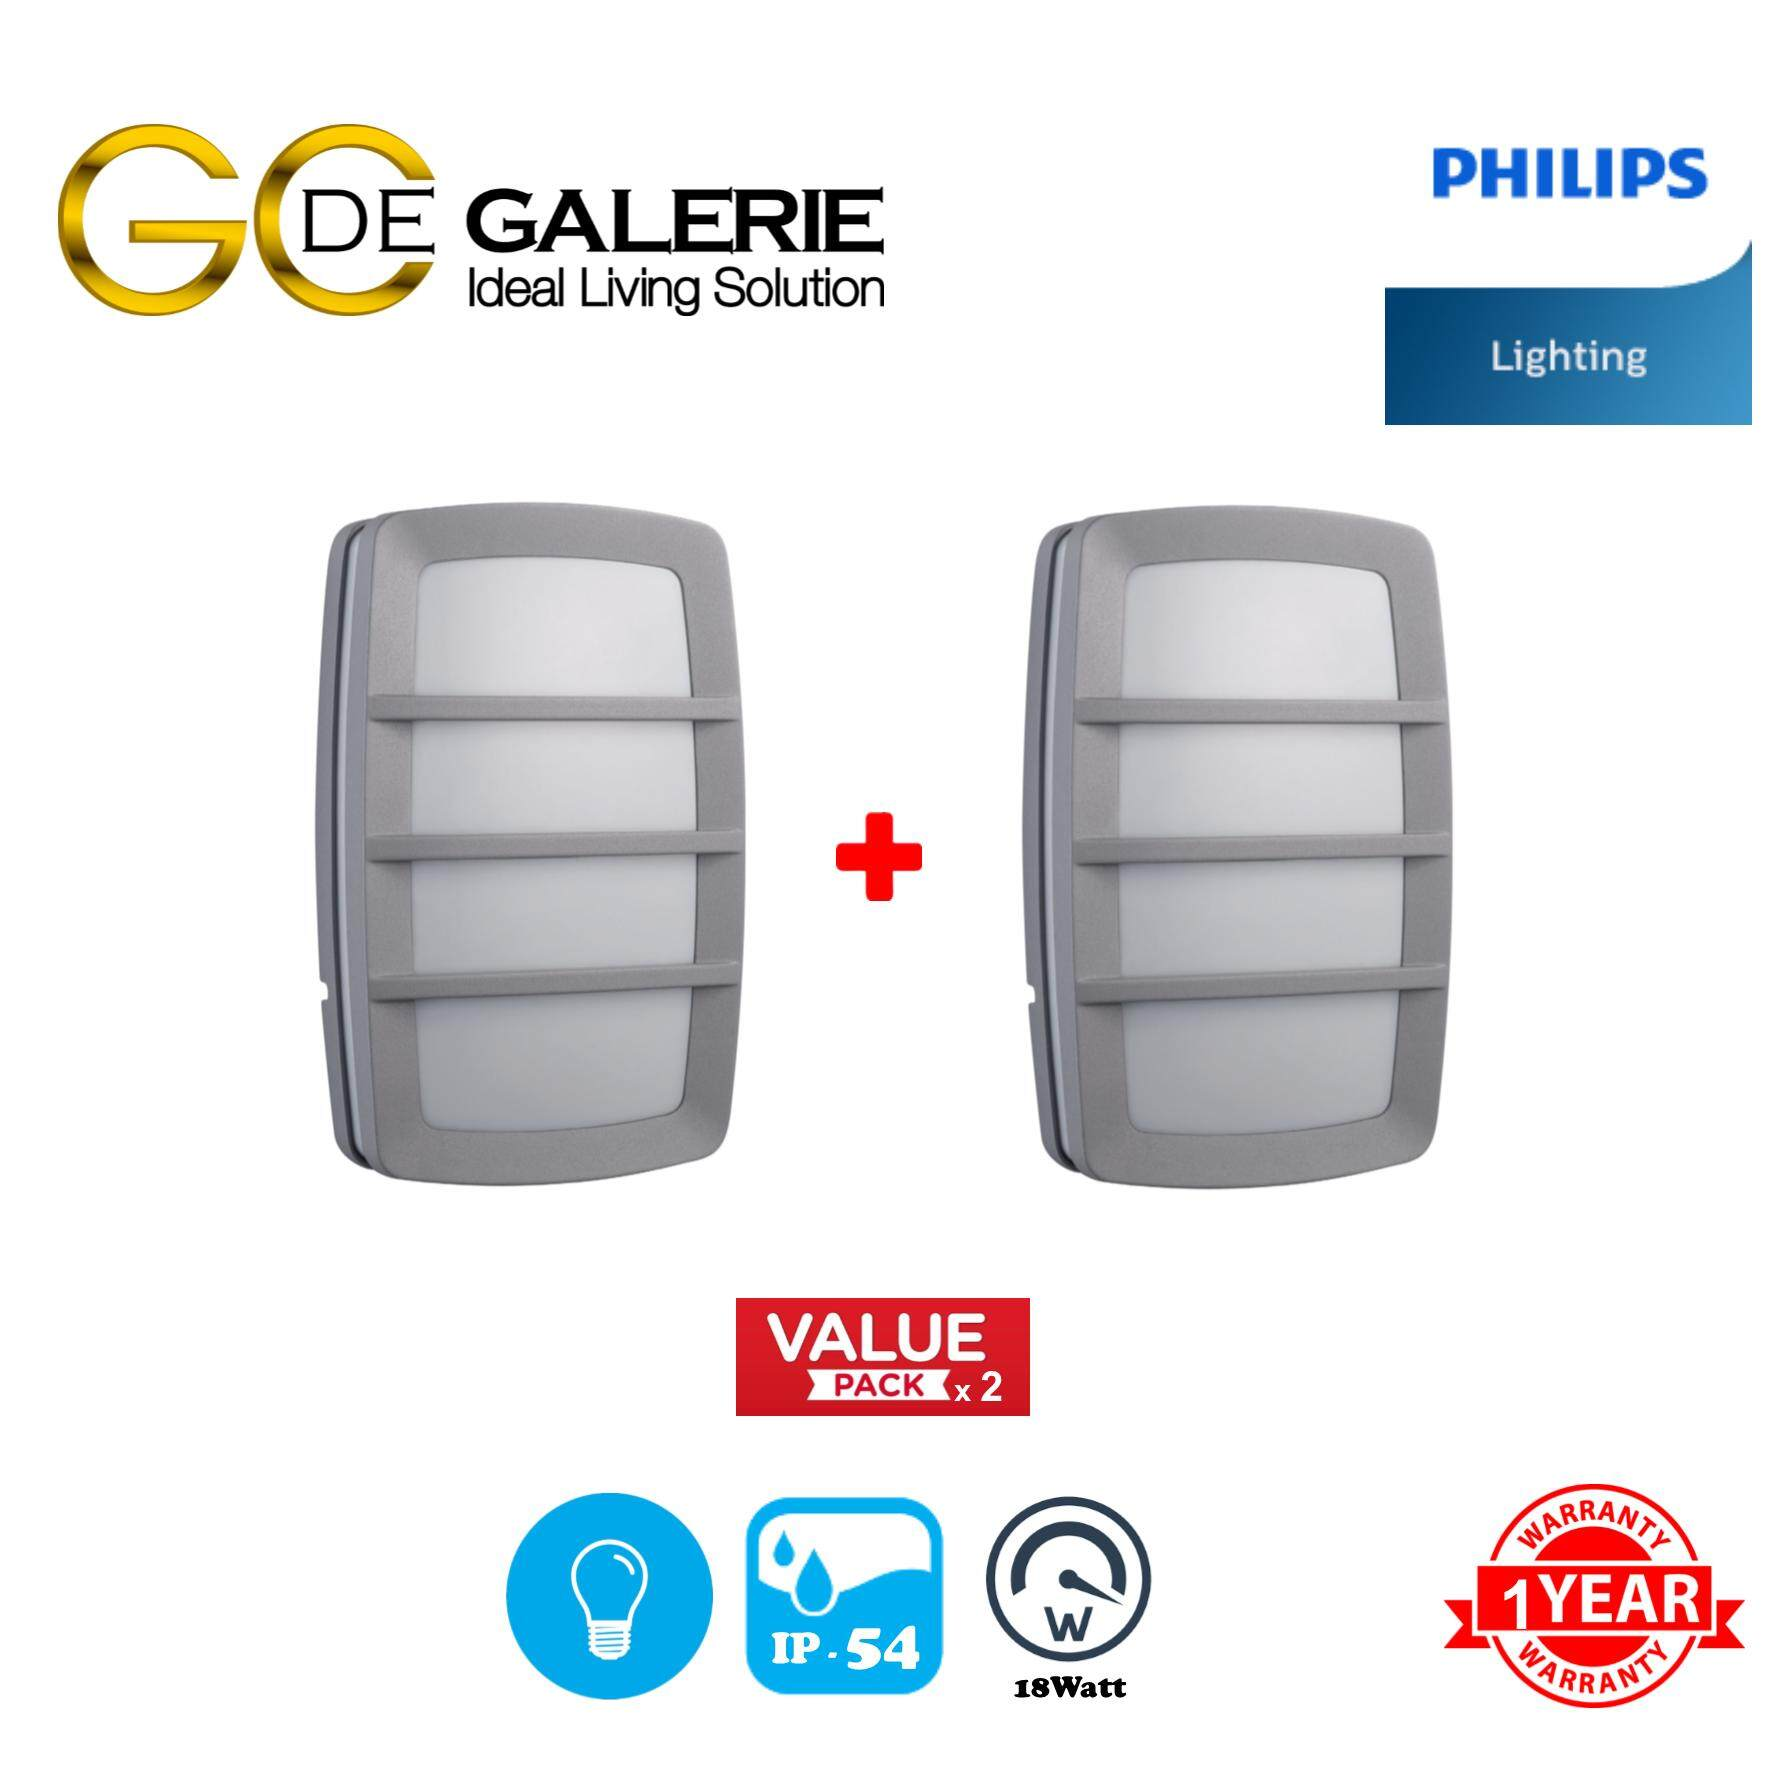 WALL LIGHT PHILIPS 17205 GY 2x18W (2 PACK)